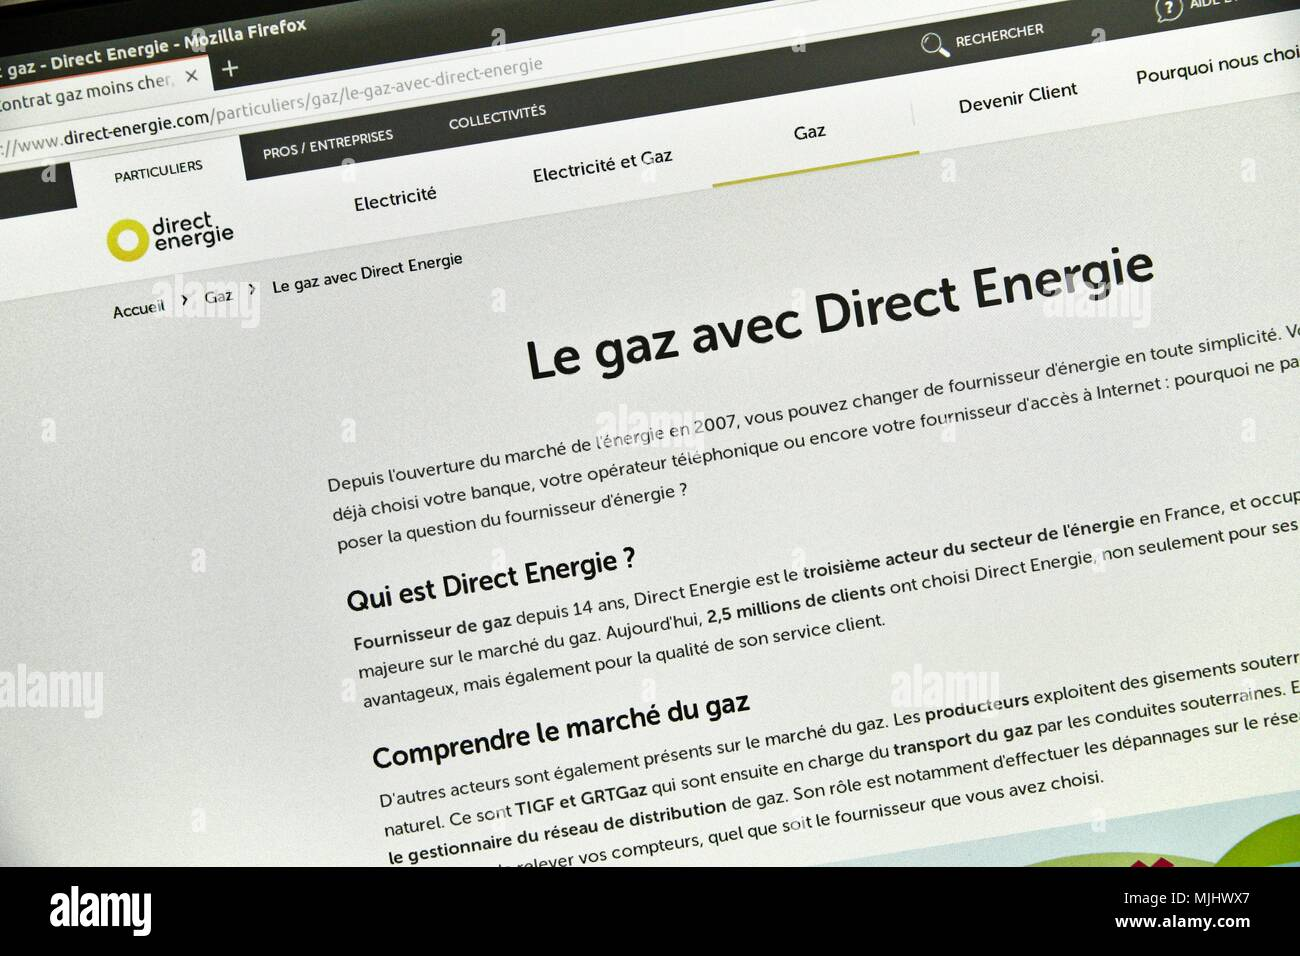 Website of Direct Energie, supplier and private French producer of electricity and gas present on the French market since 2003. - Stock Image